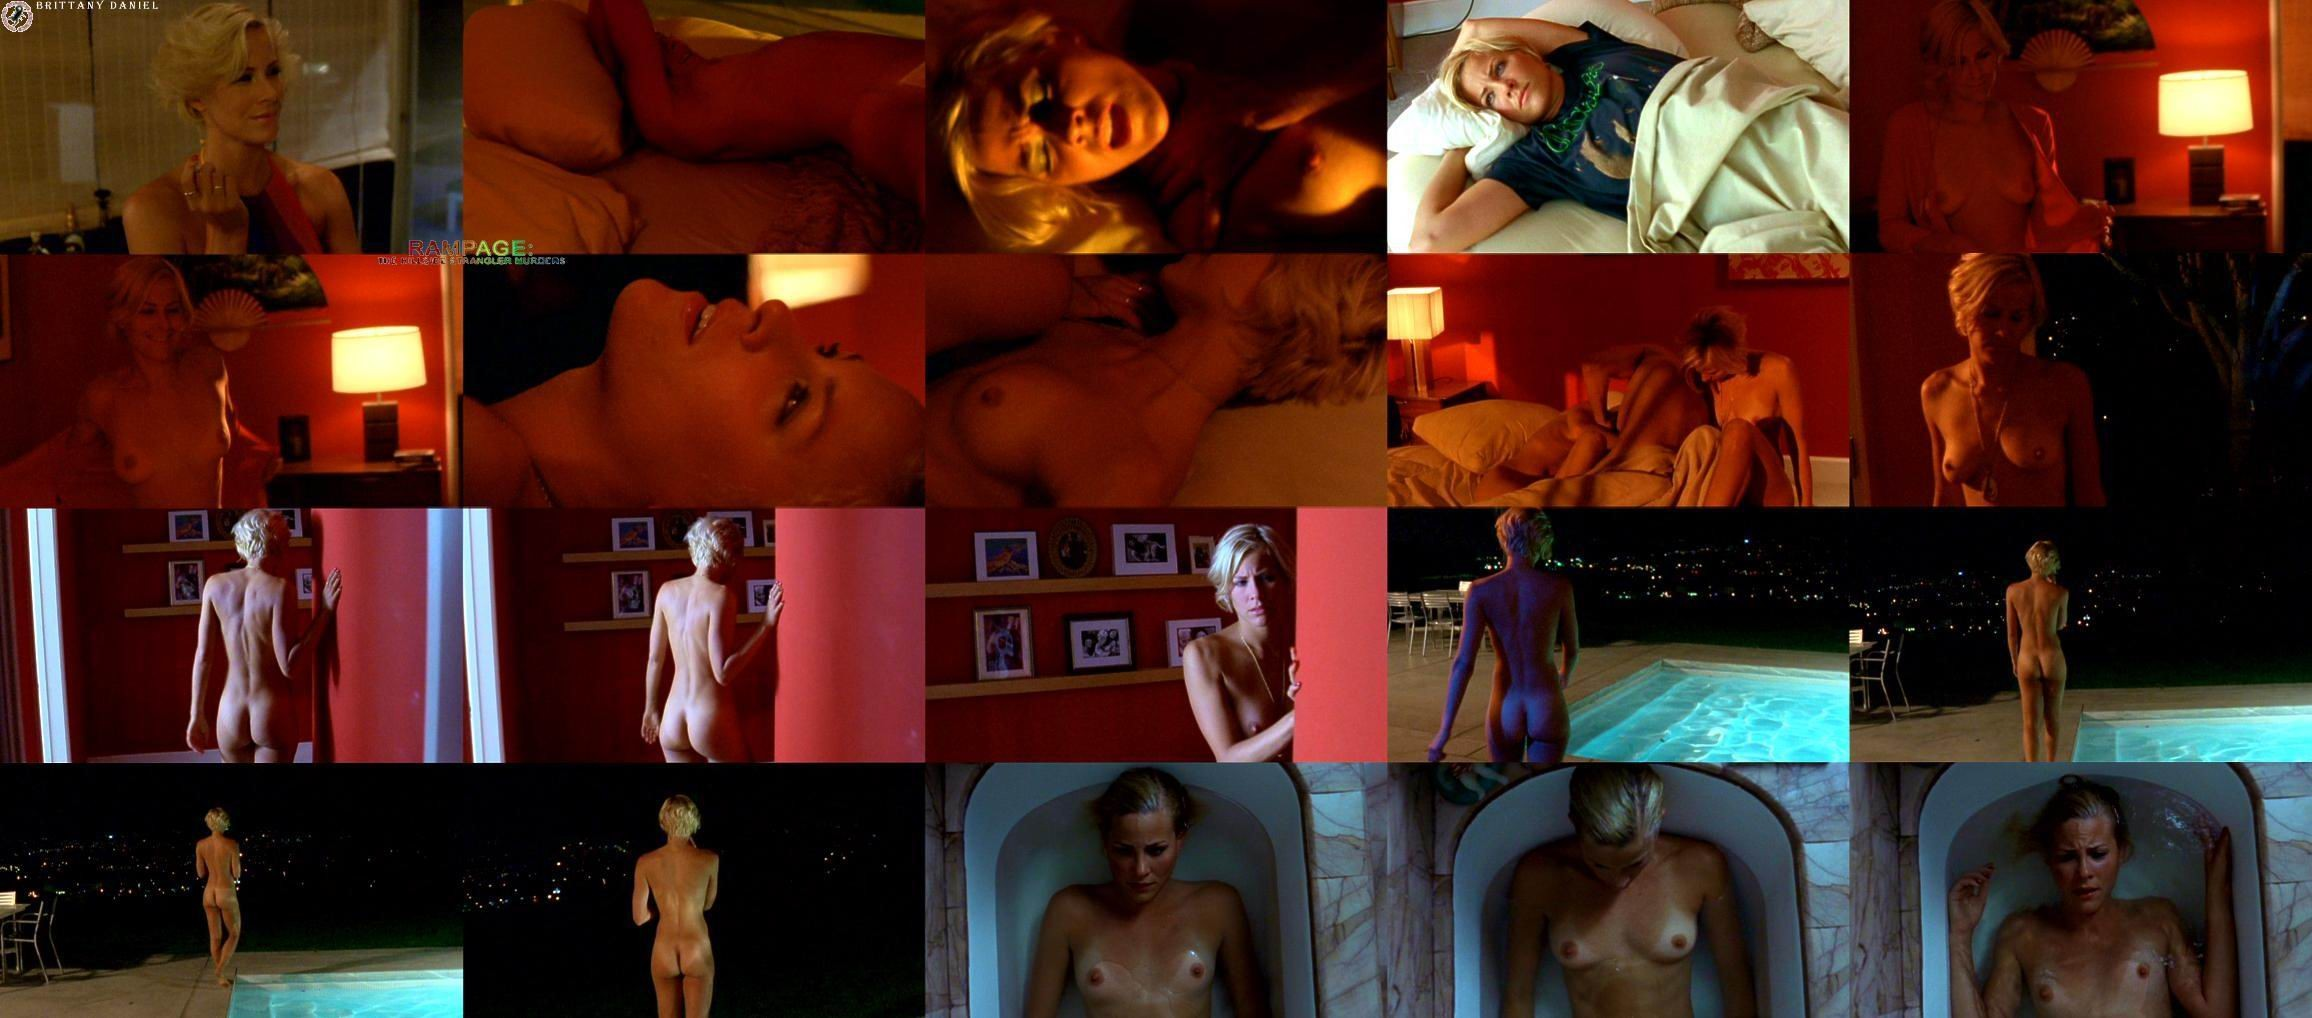 Brittany daniel naked ass — photo 8